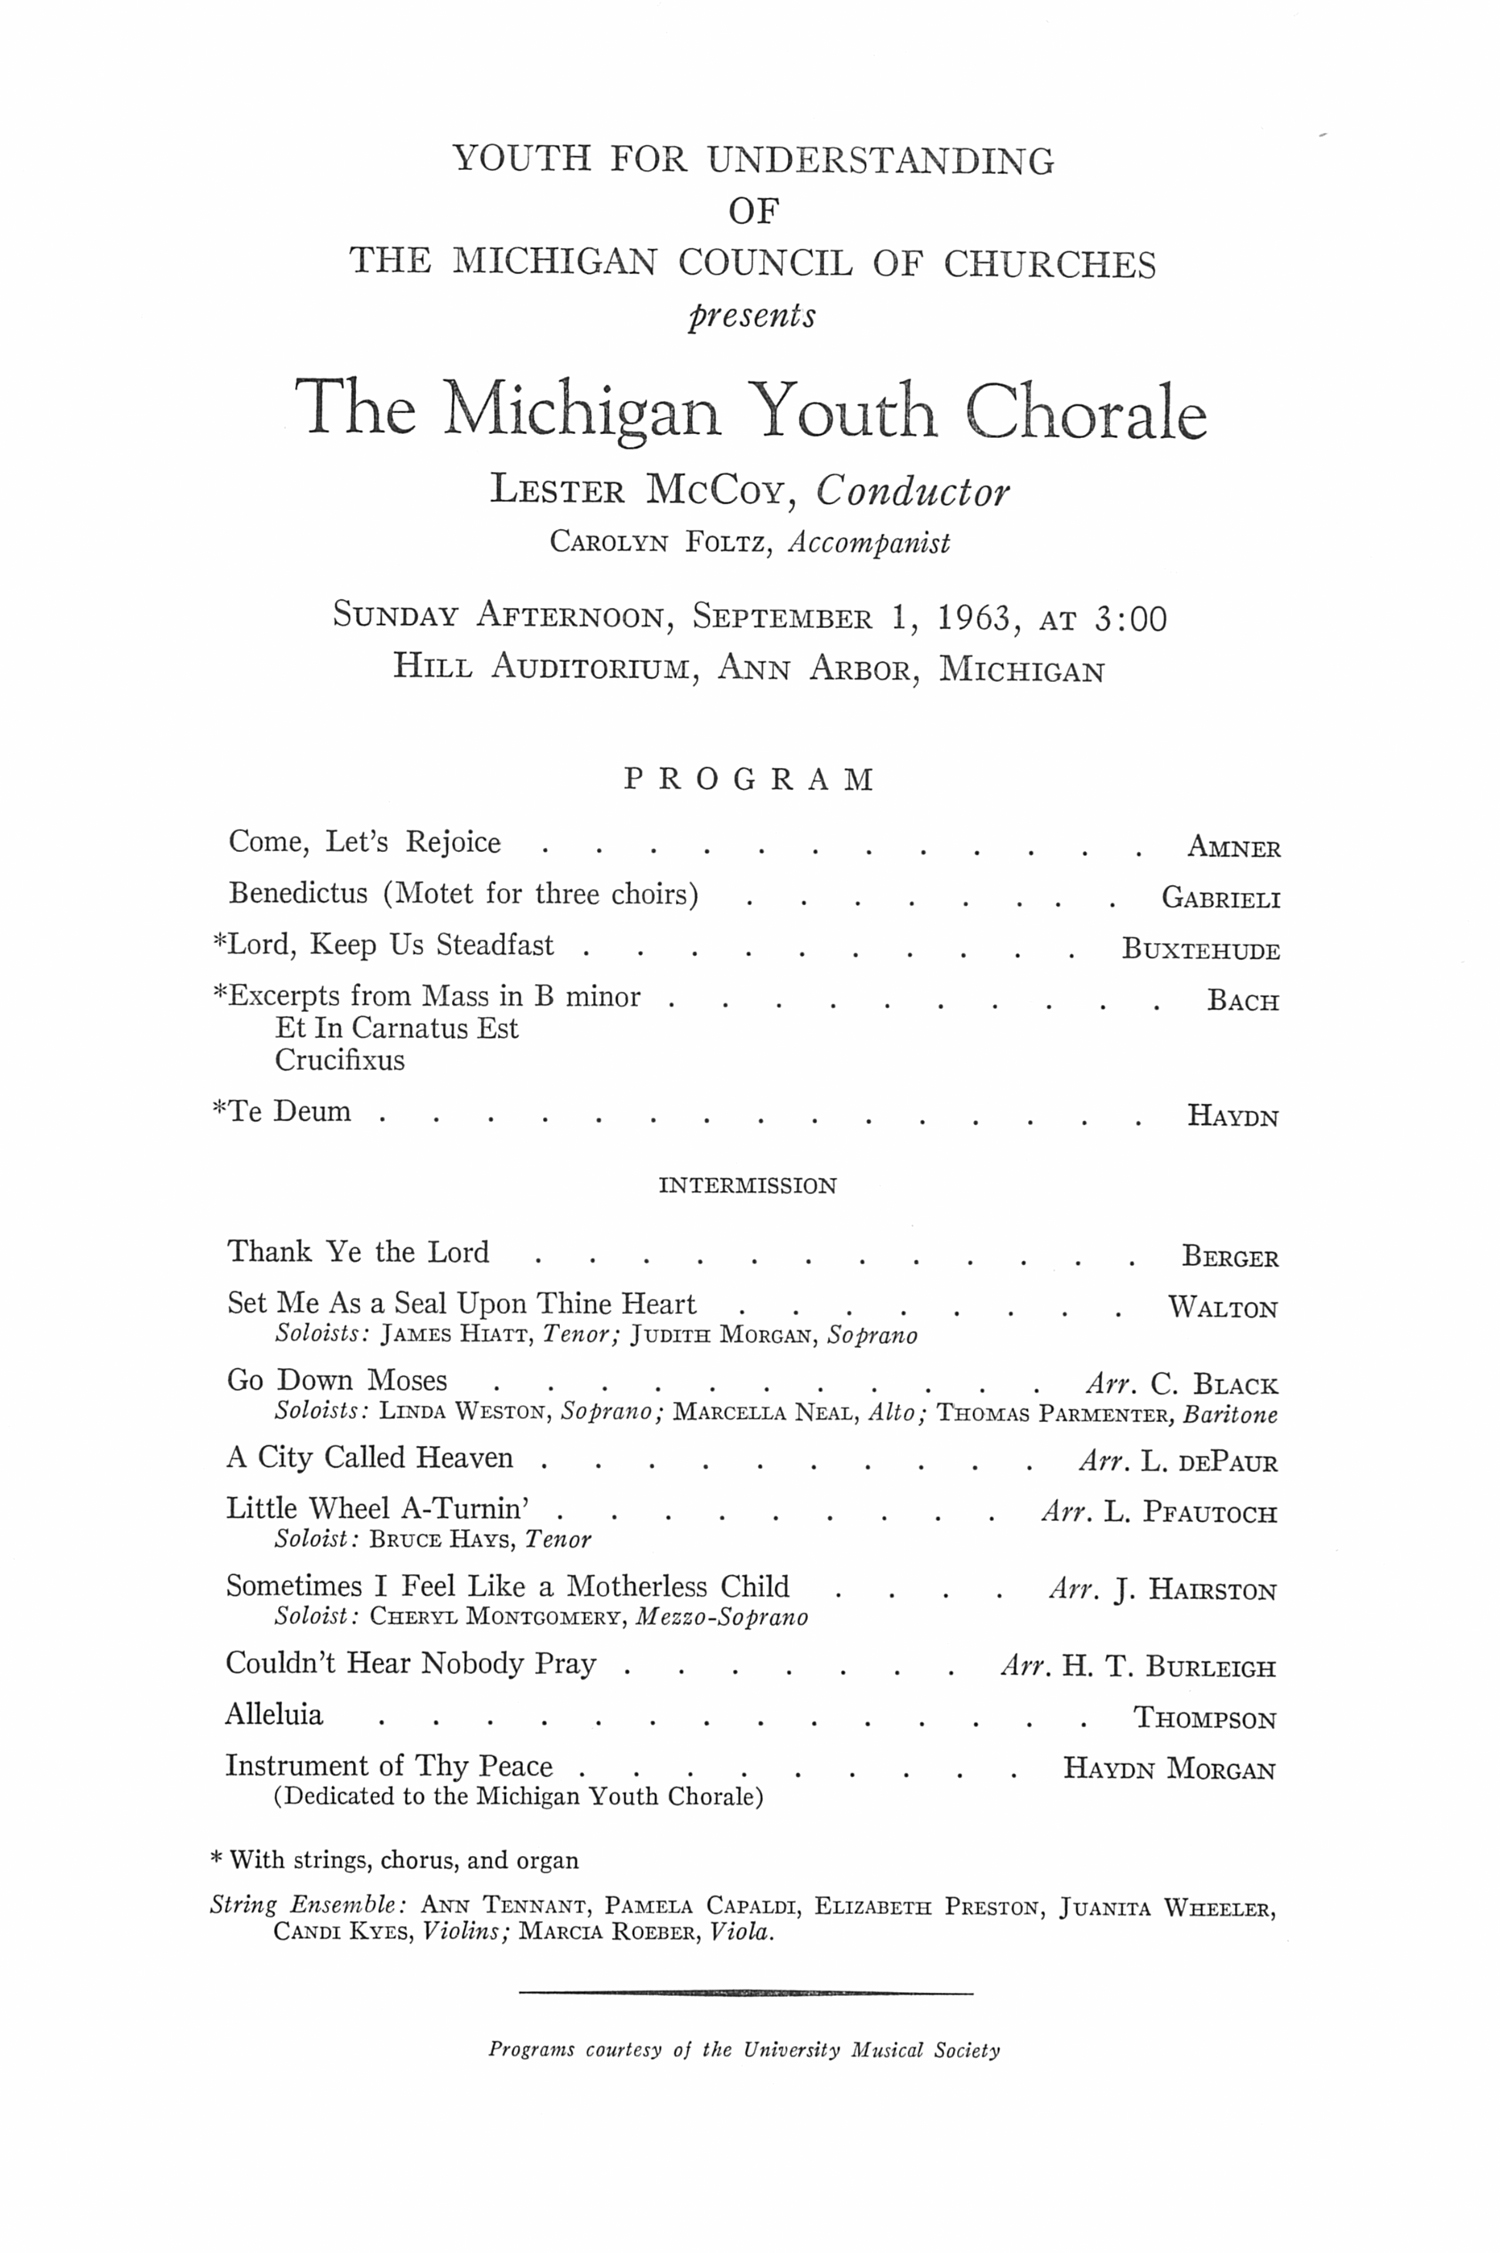 UMS Concert Program, September 1, 1963: The Michigan Youth Chorale -- Lester Mccoy image